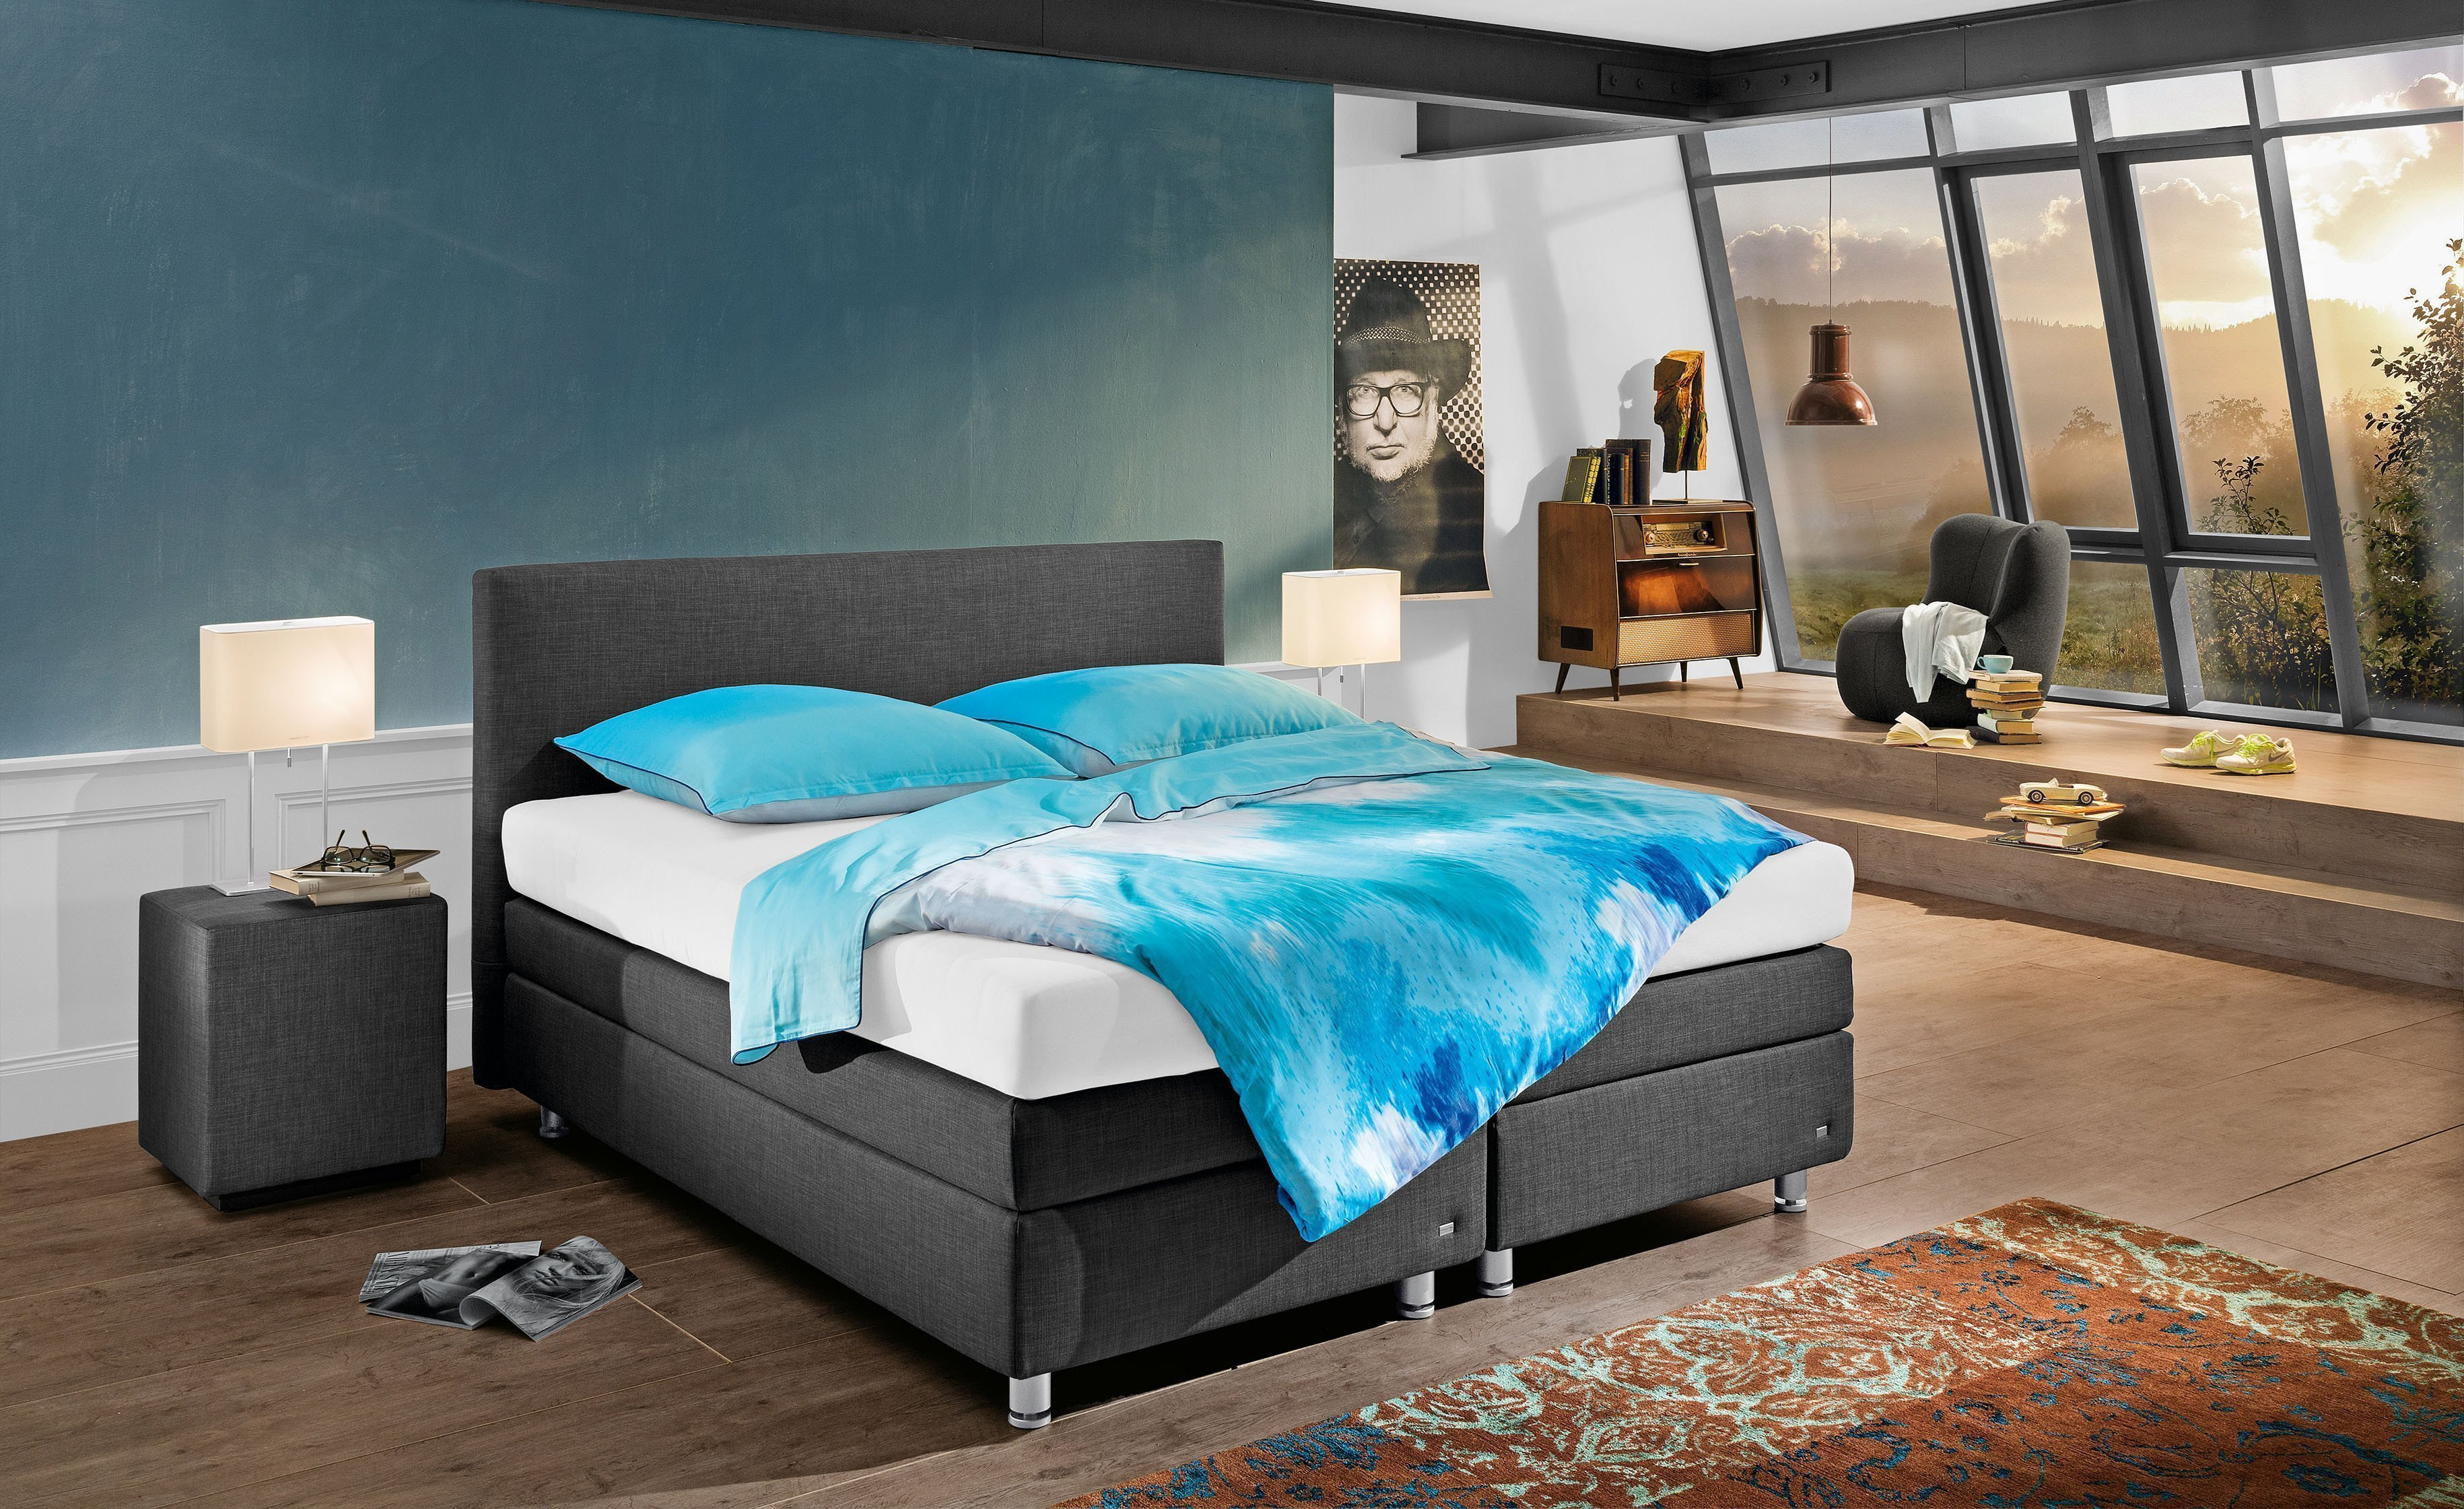 mbel flamme onlineshop stunning auschnitt des titelblatts aus dem mmax katalog gltig von bis. Black Bedroom Furniture Sets. Home Design Ideas